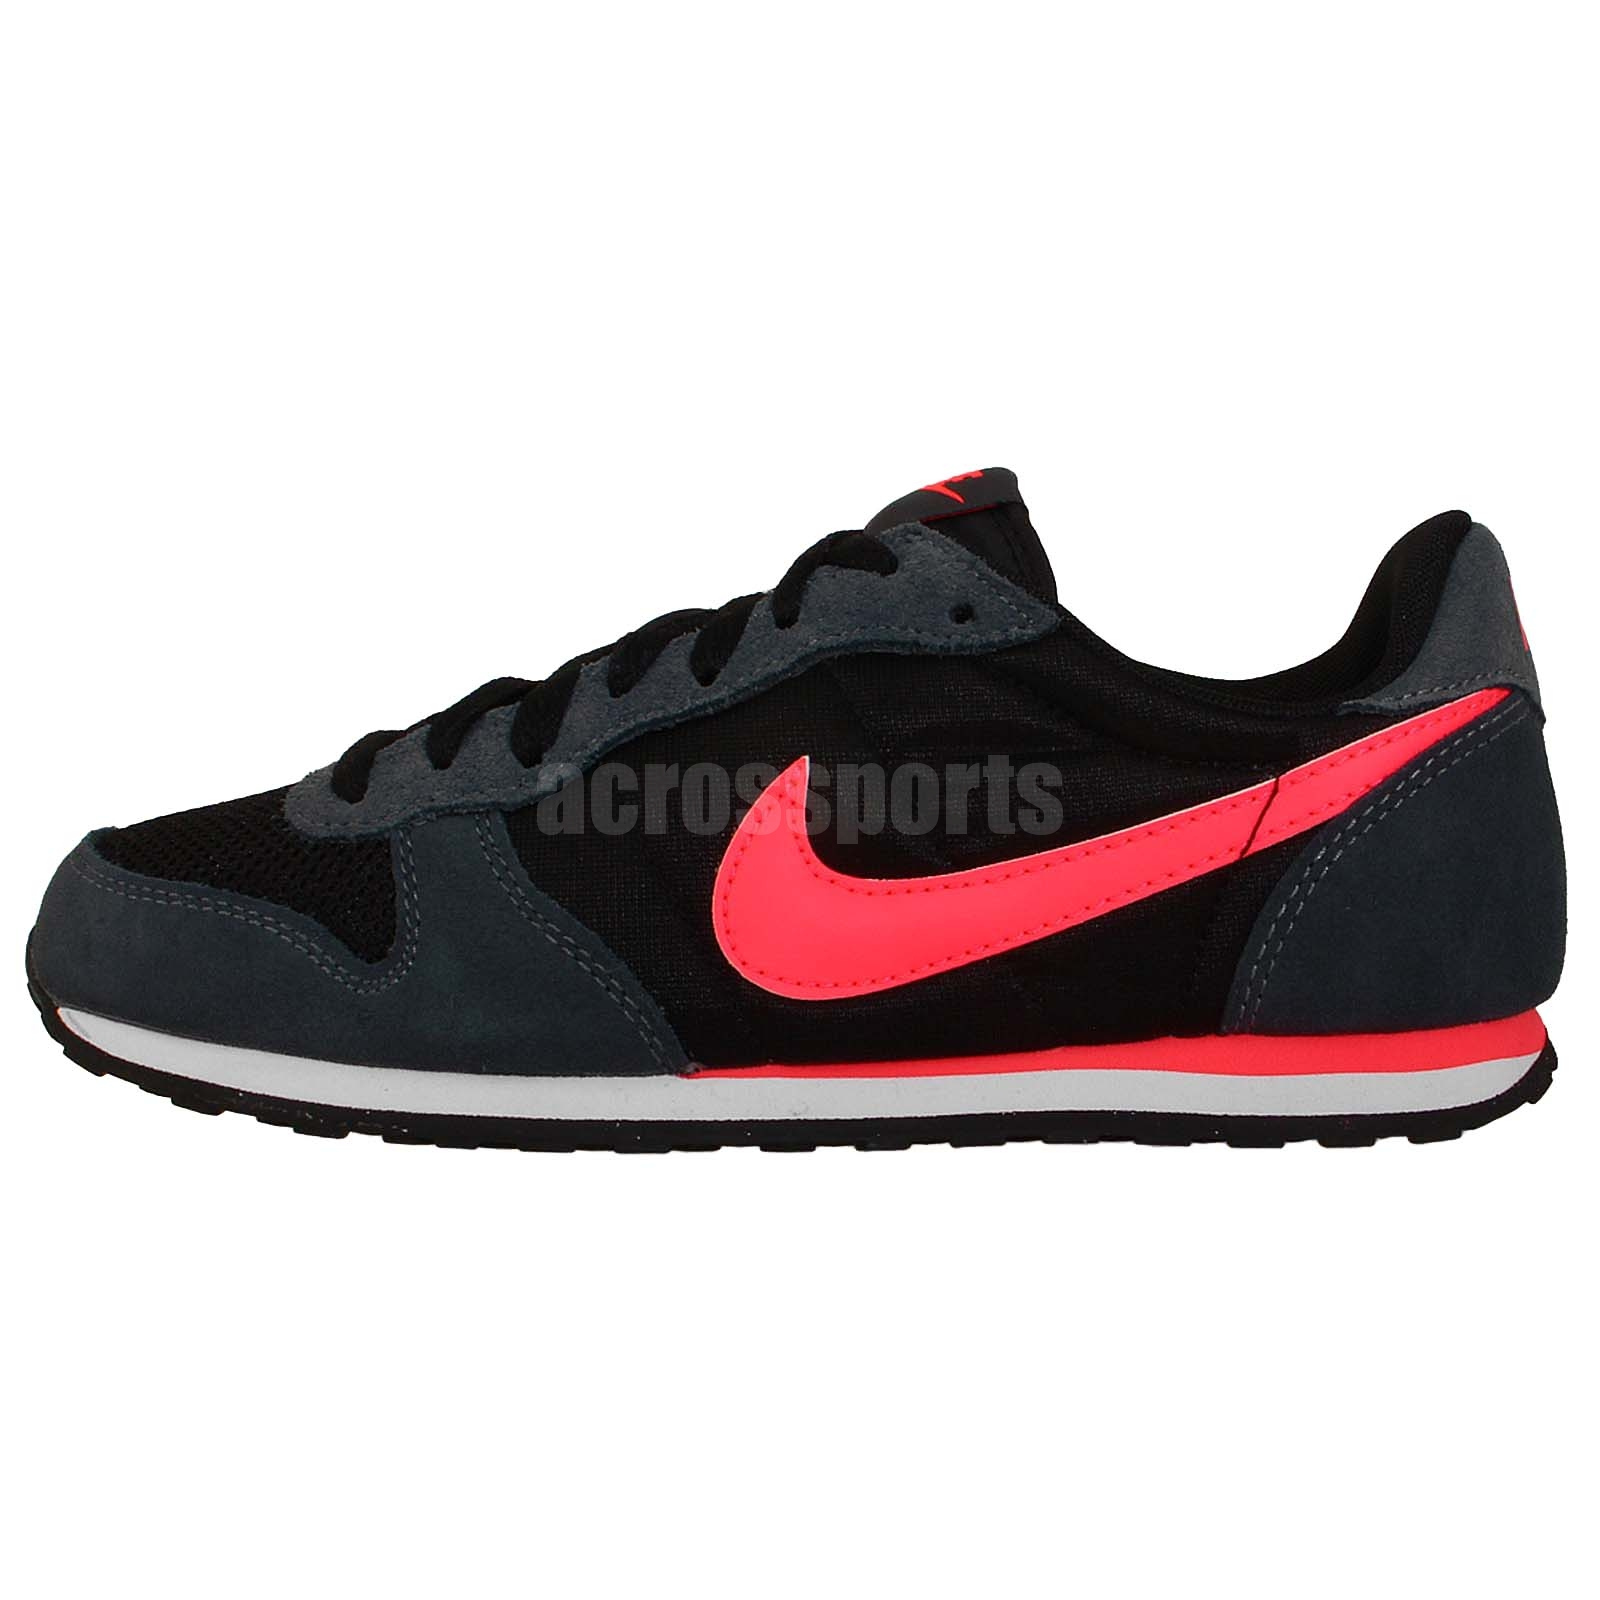 Popular 2014 Women Nike Cortez Shoes Sky BluePurpleGoldSilverPink